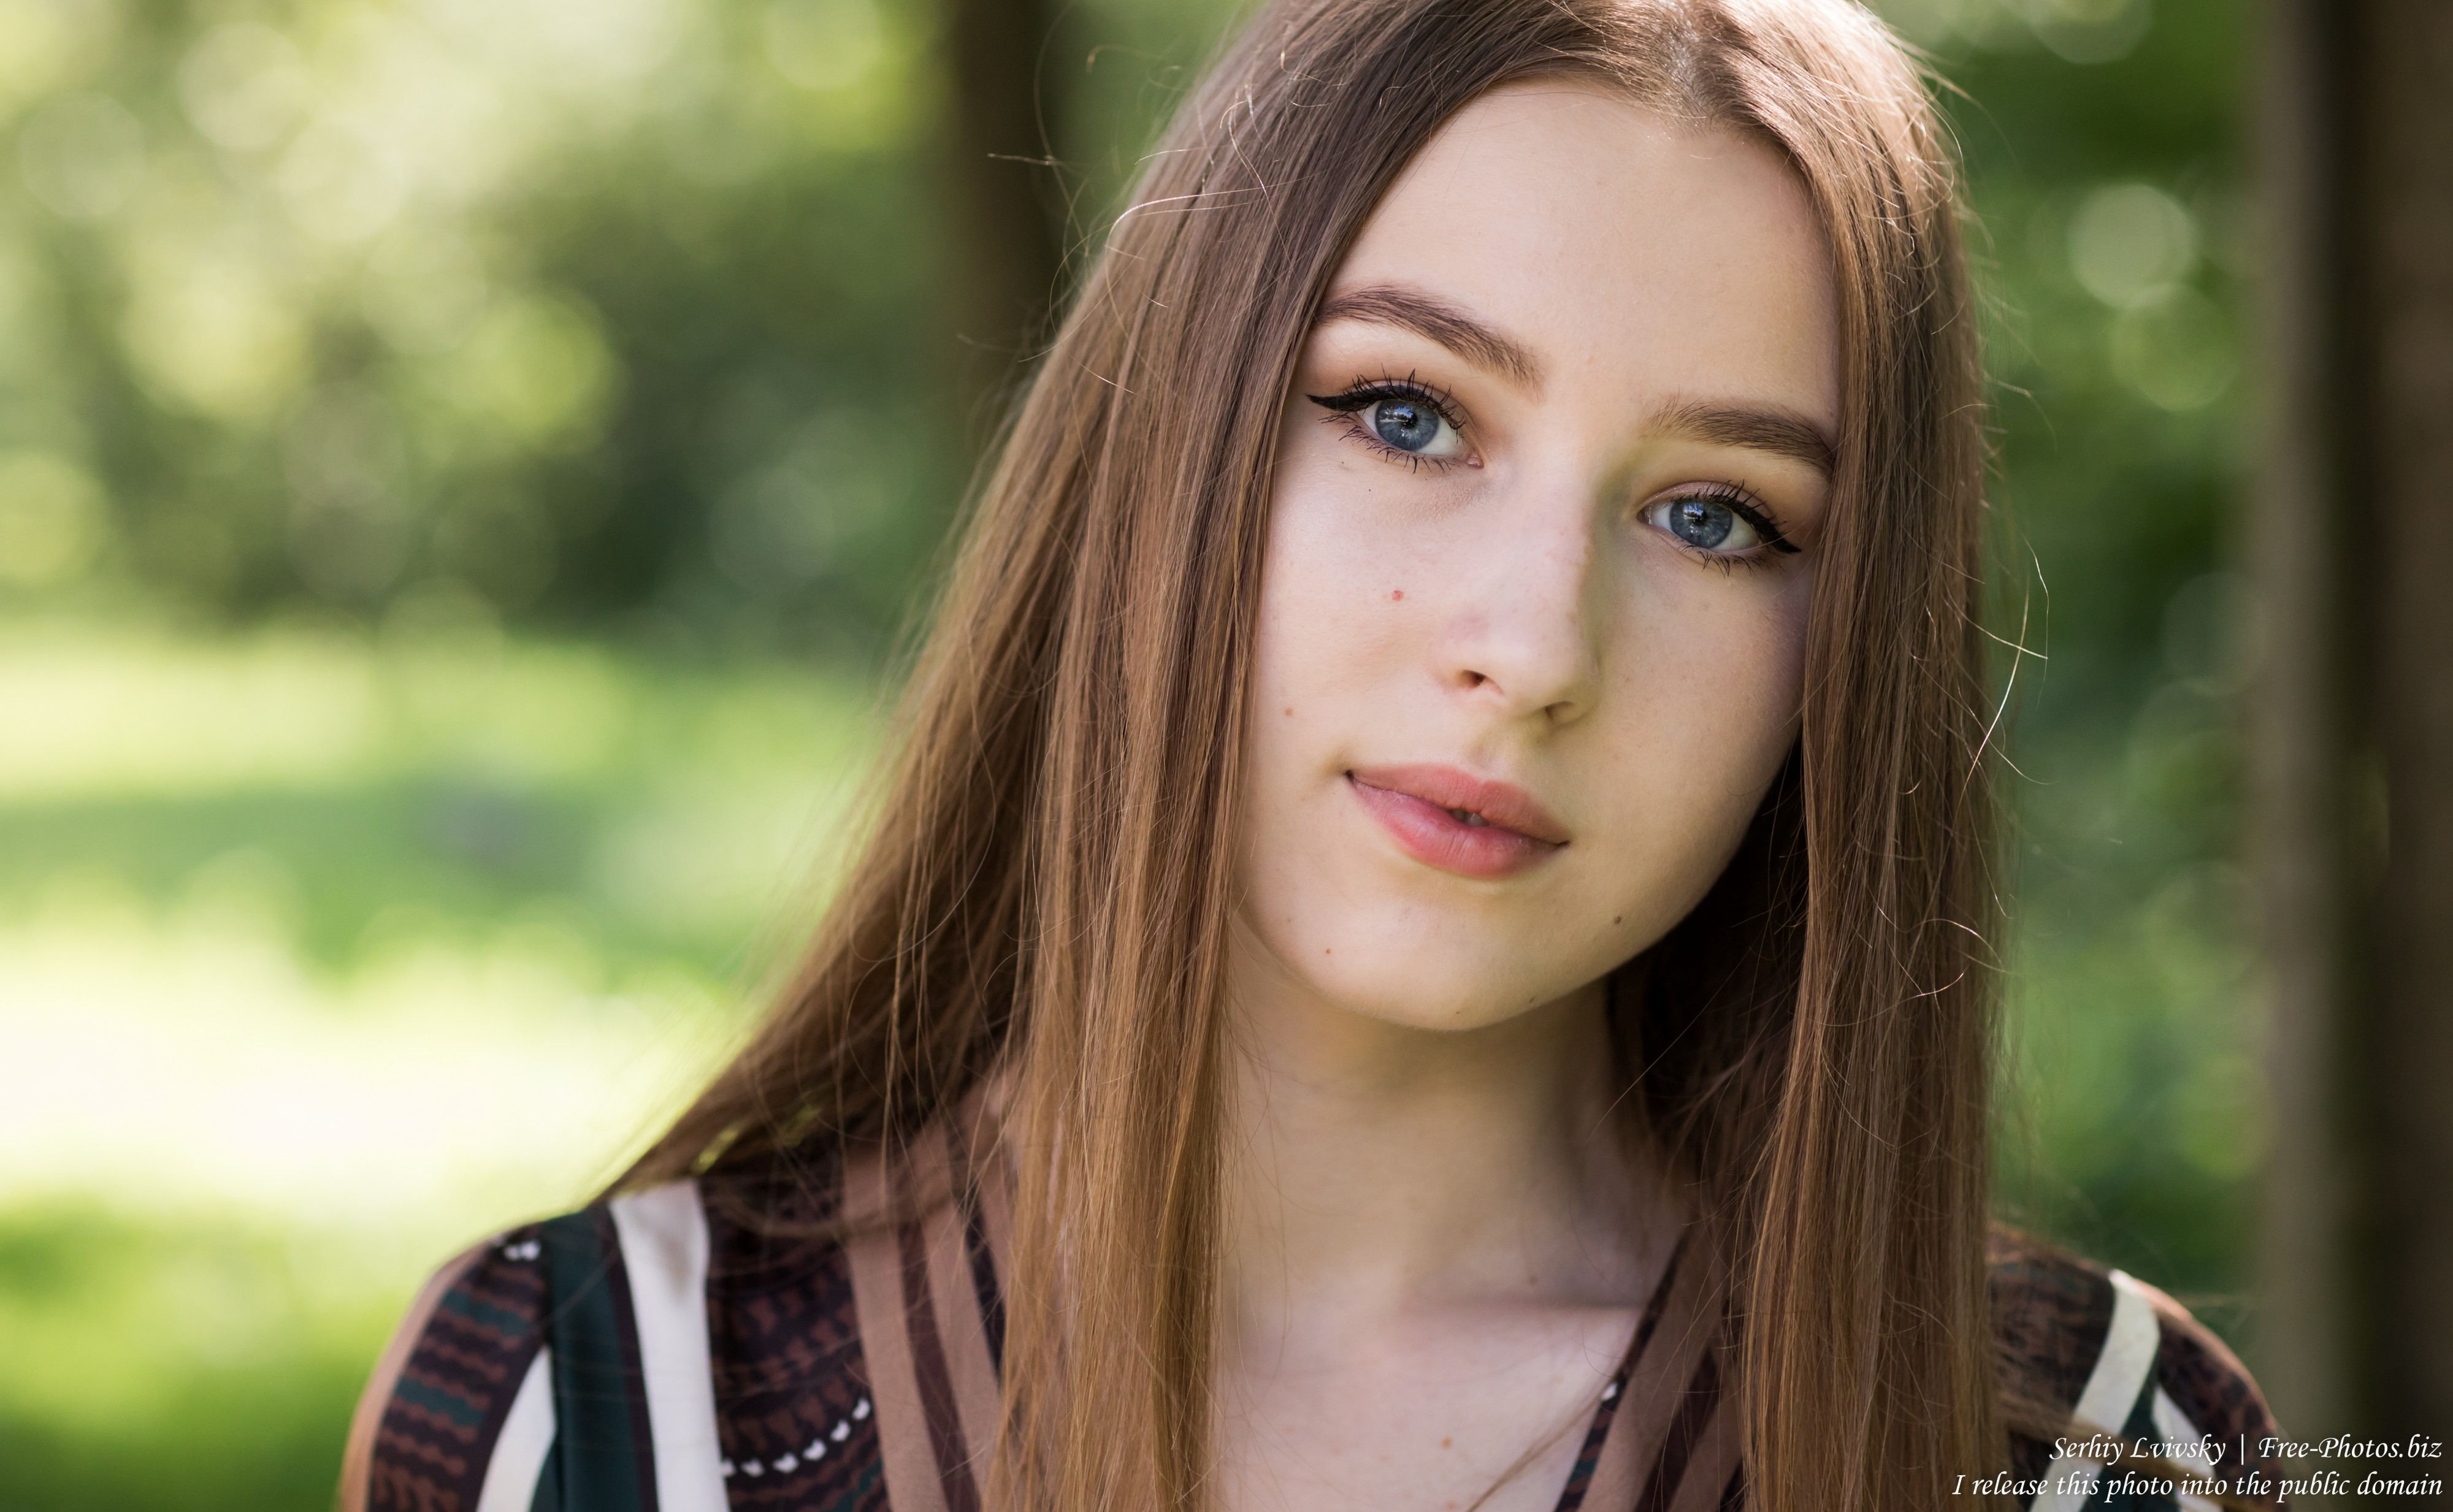 Vika - a 17-year-old girl with blue eyes and natural fair hair photographed in June 2019 by Serhiy Lvivsky, picture 24